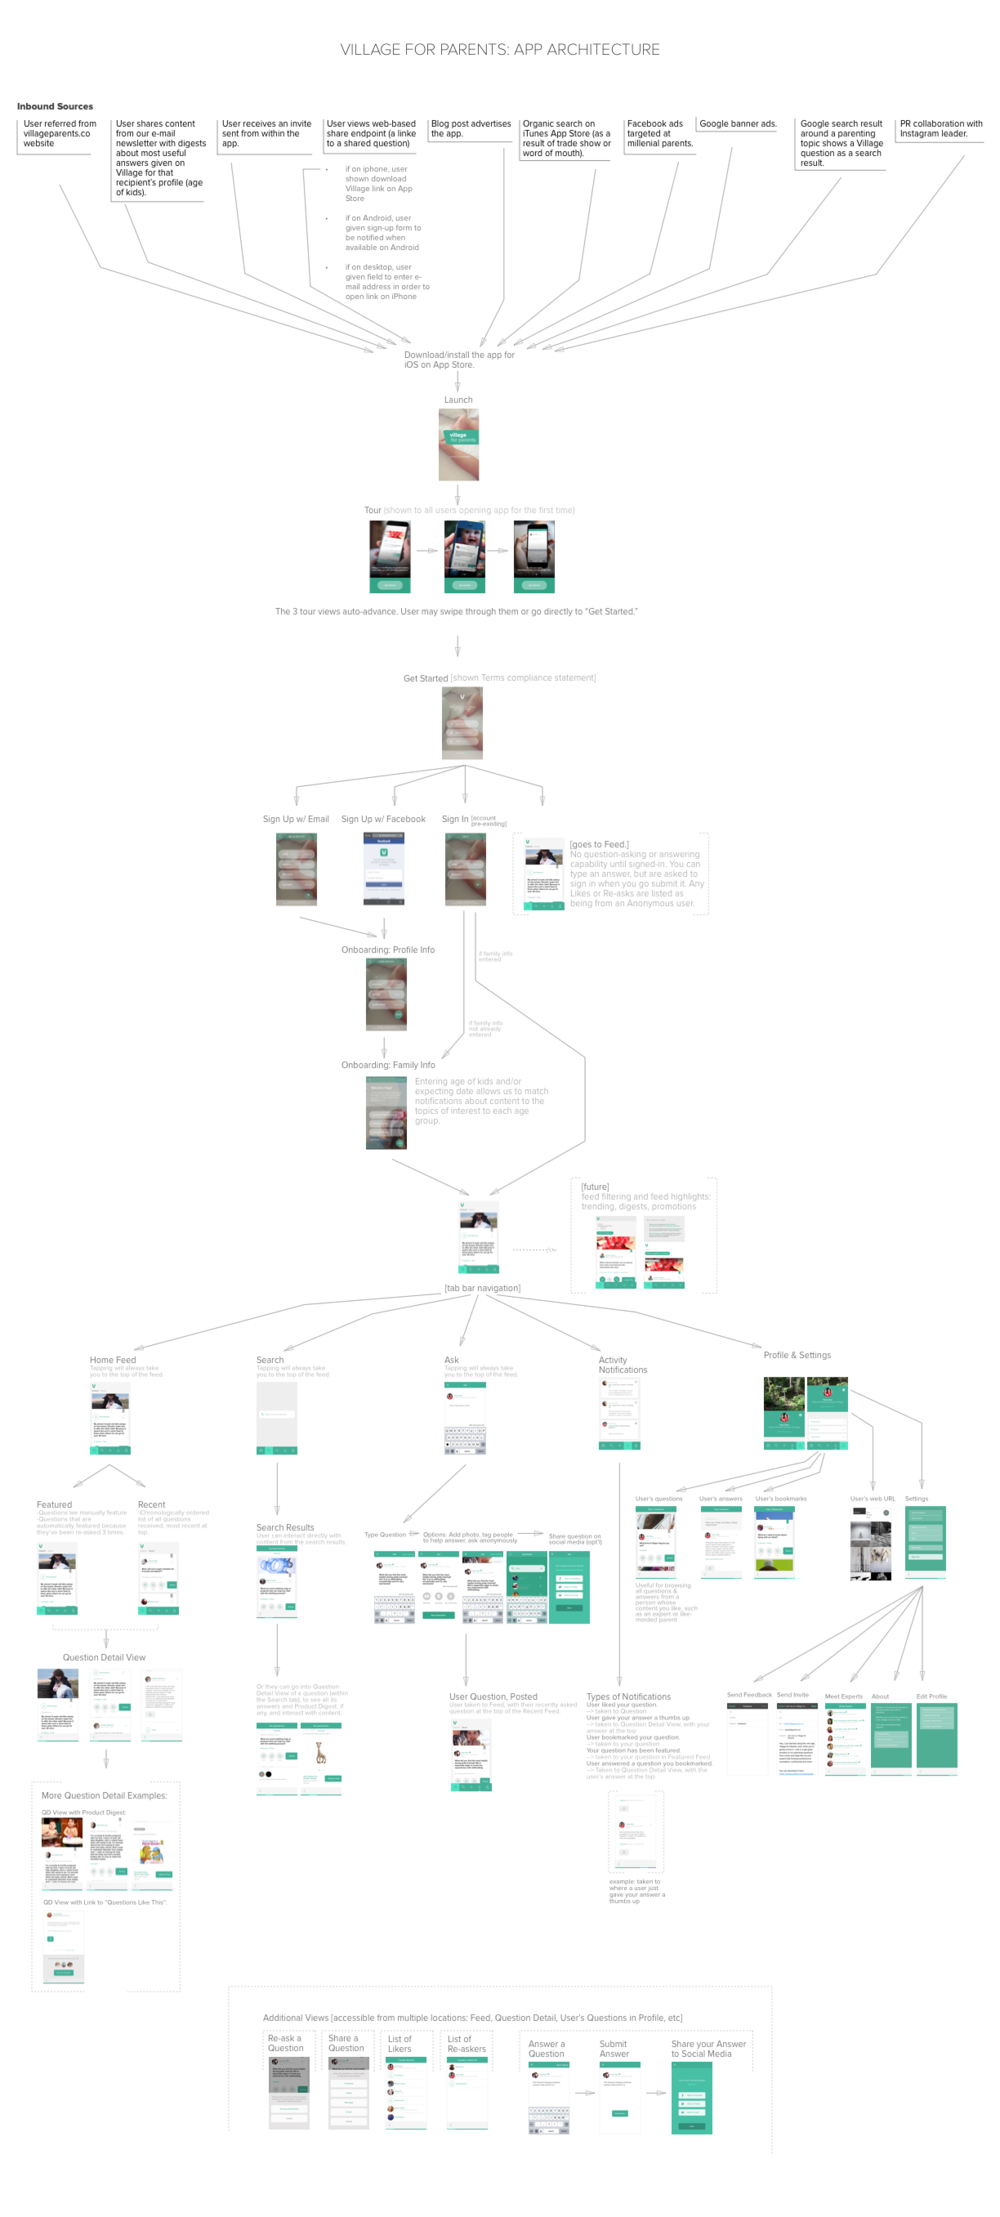 Village_AppArchitecture_20160223.png